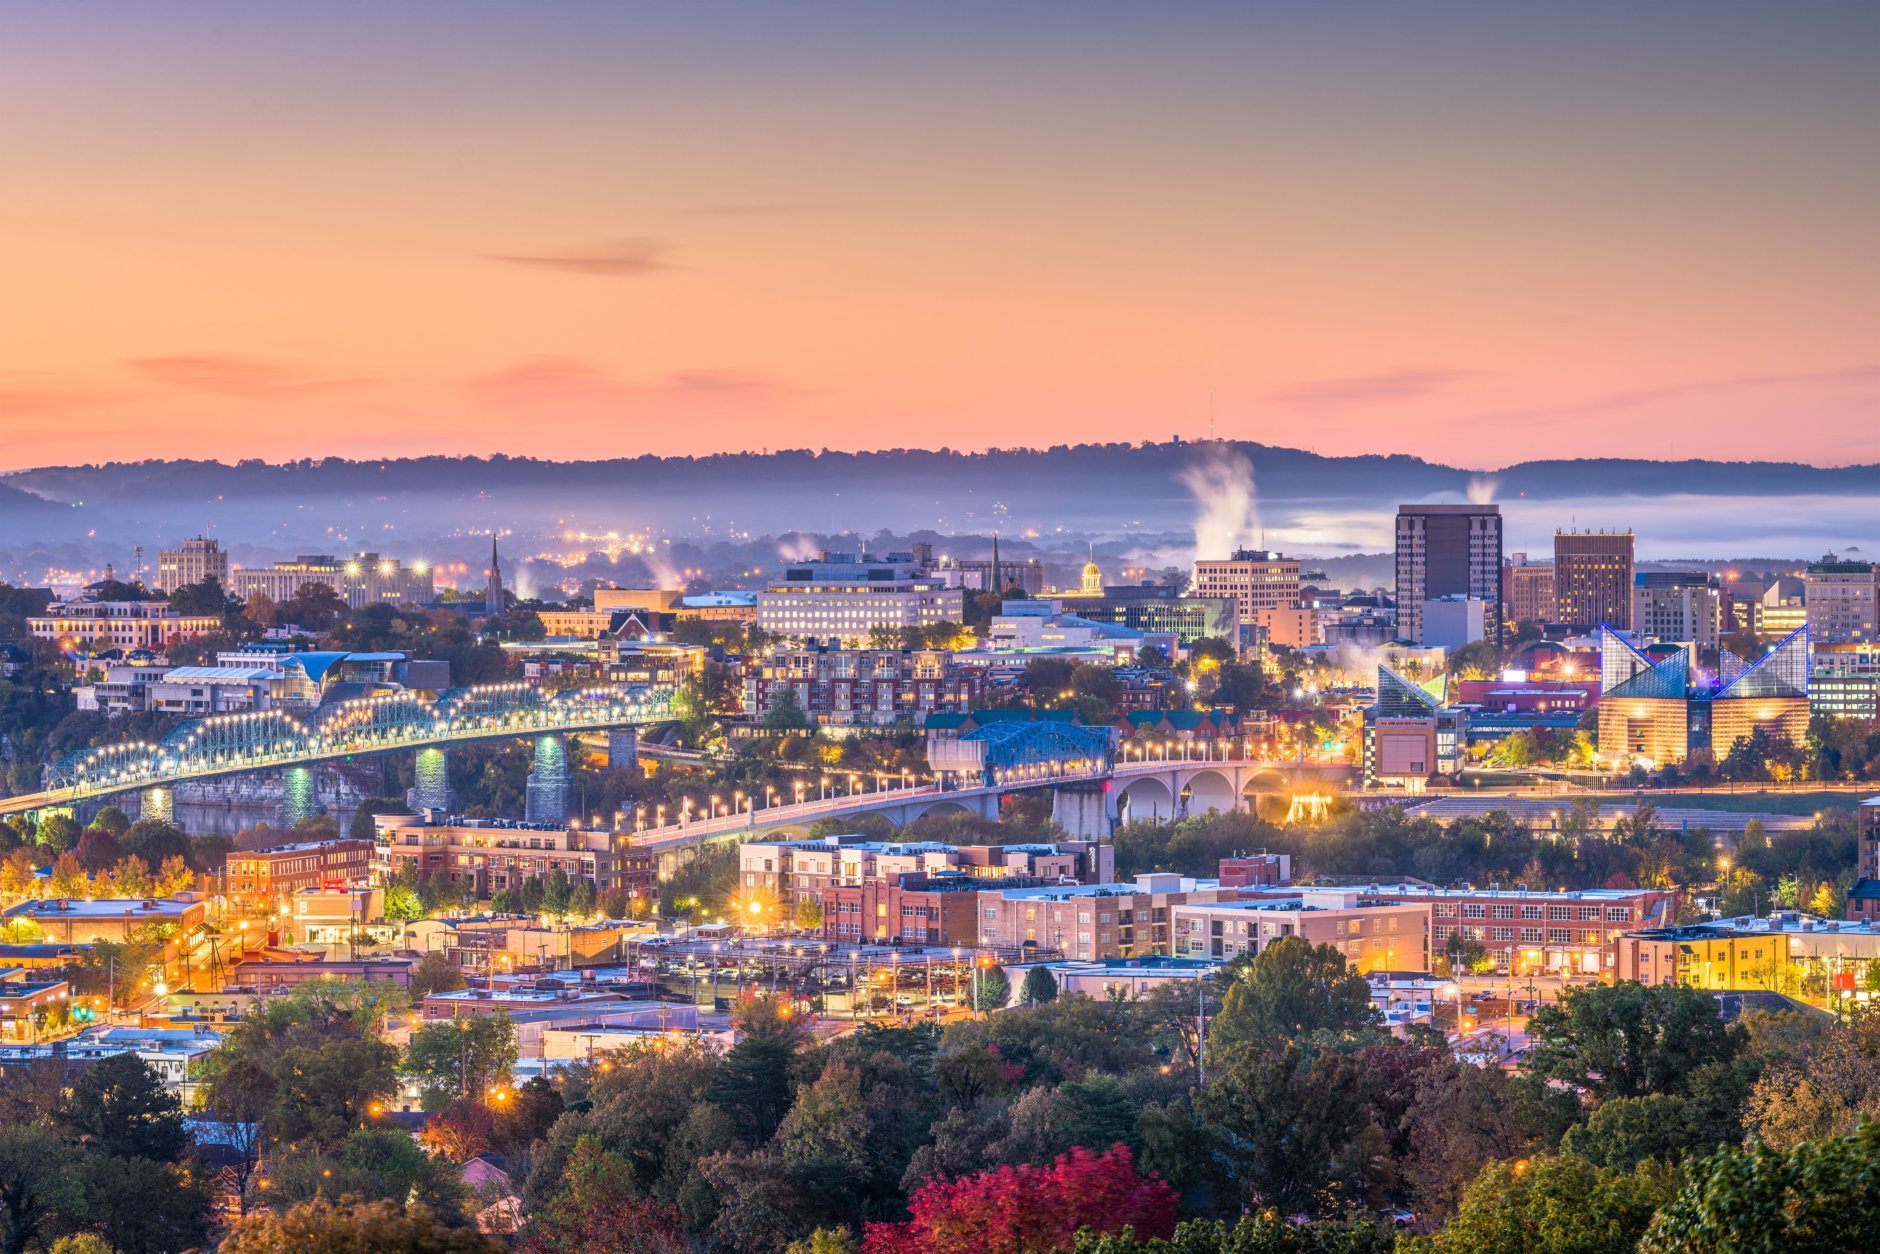 Memphis, Tennessee, USA downtown city skyline at dusk.